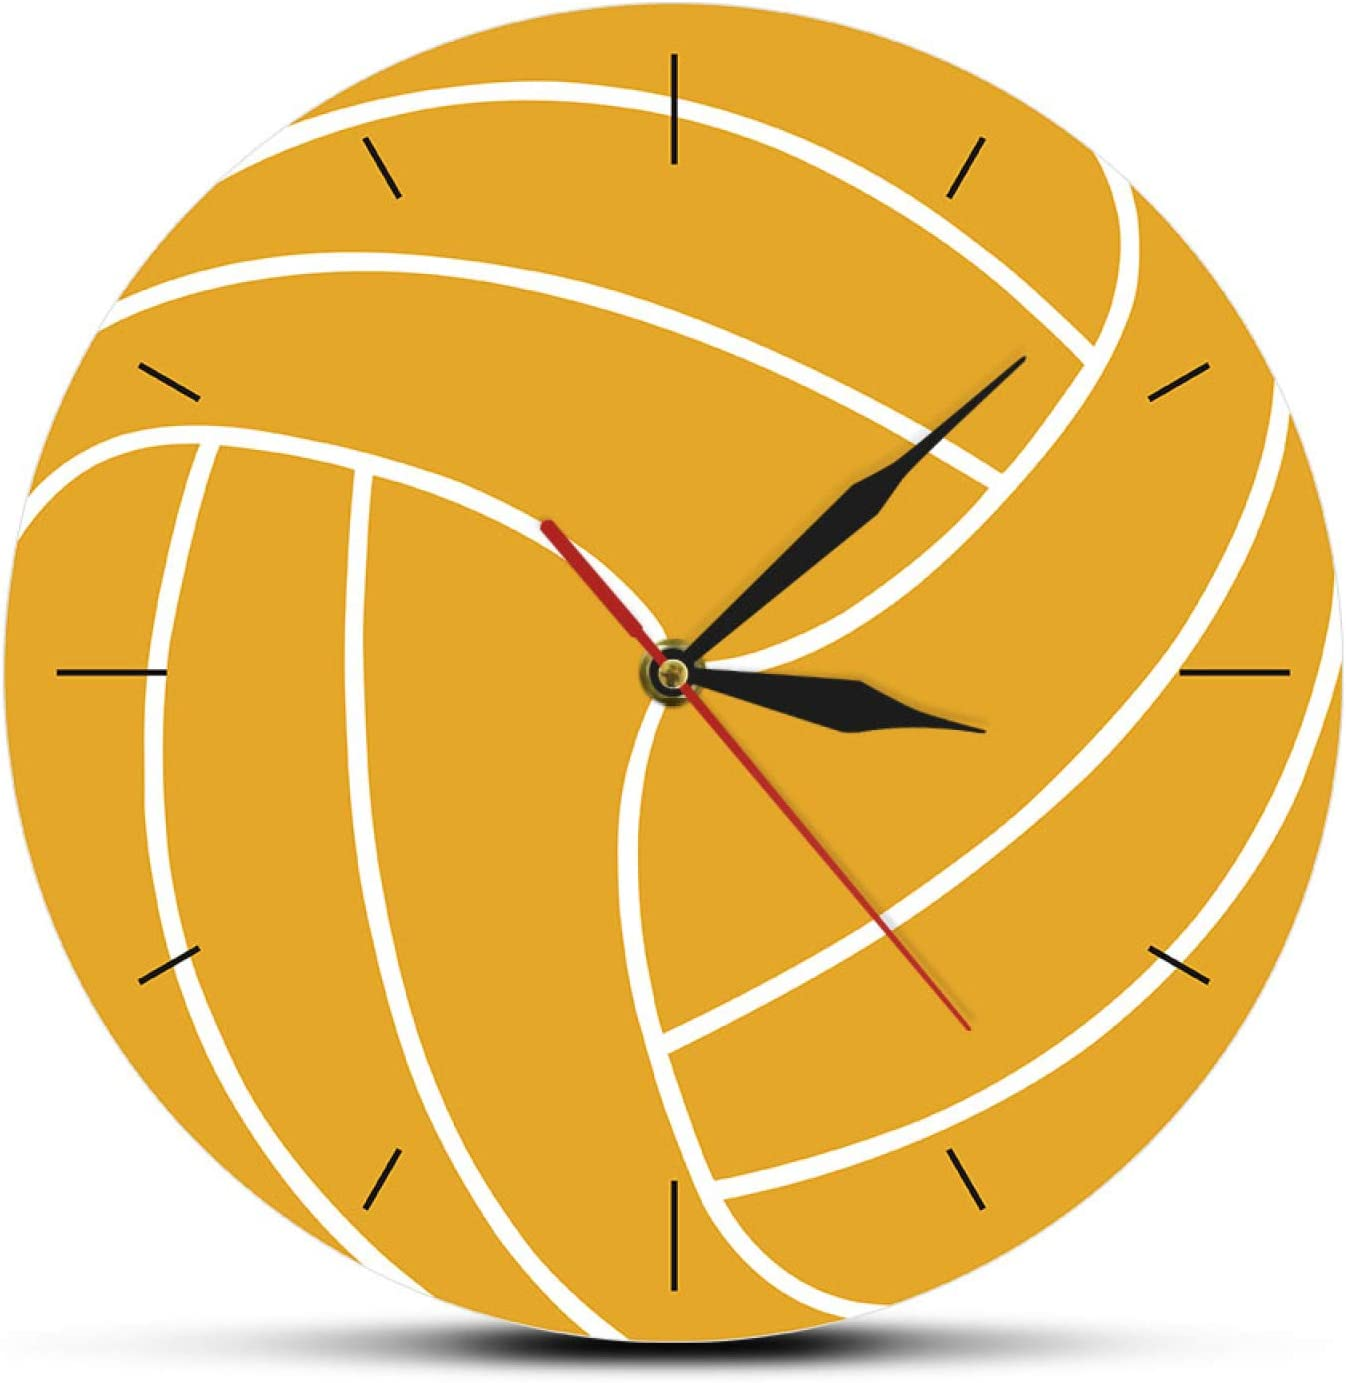 Wall Clock Popular shop is the lowest price challenge Volleyball Ball quality assurance 3D Mov Silent Visual Print